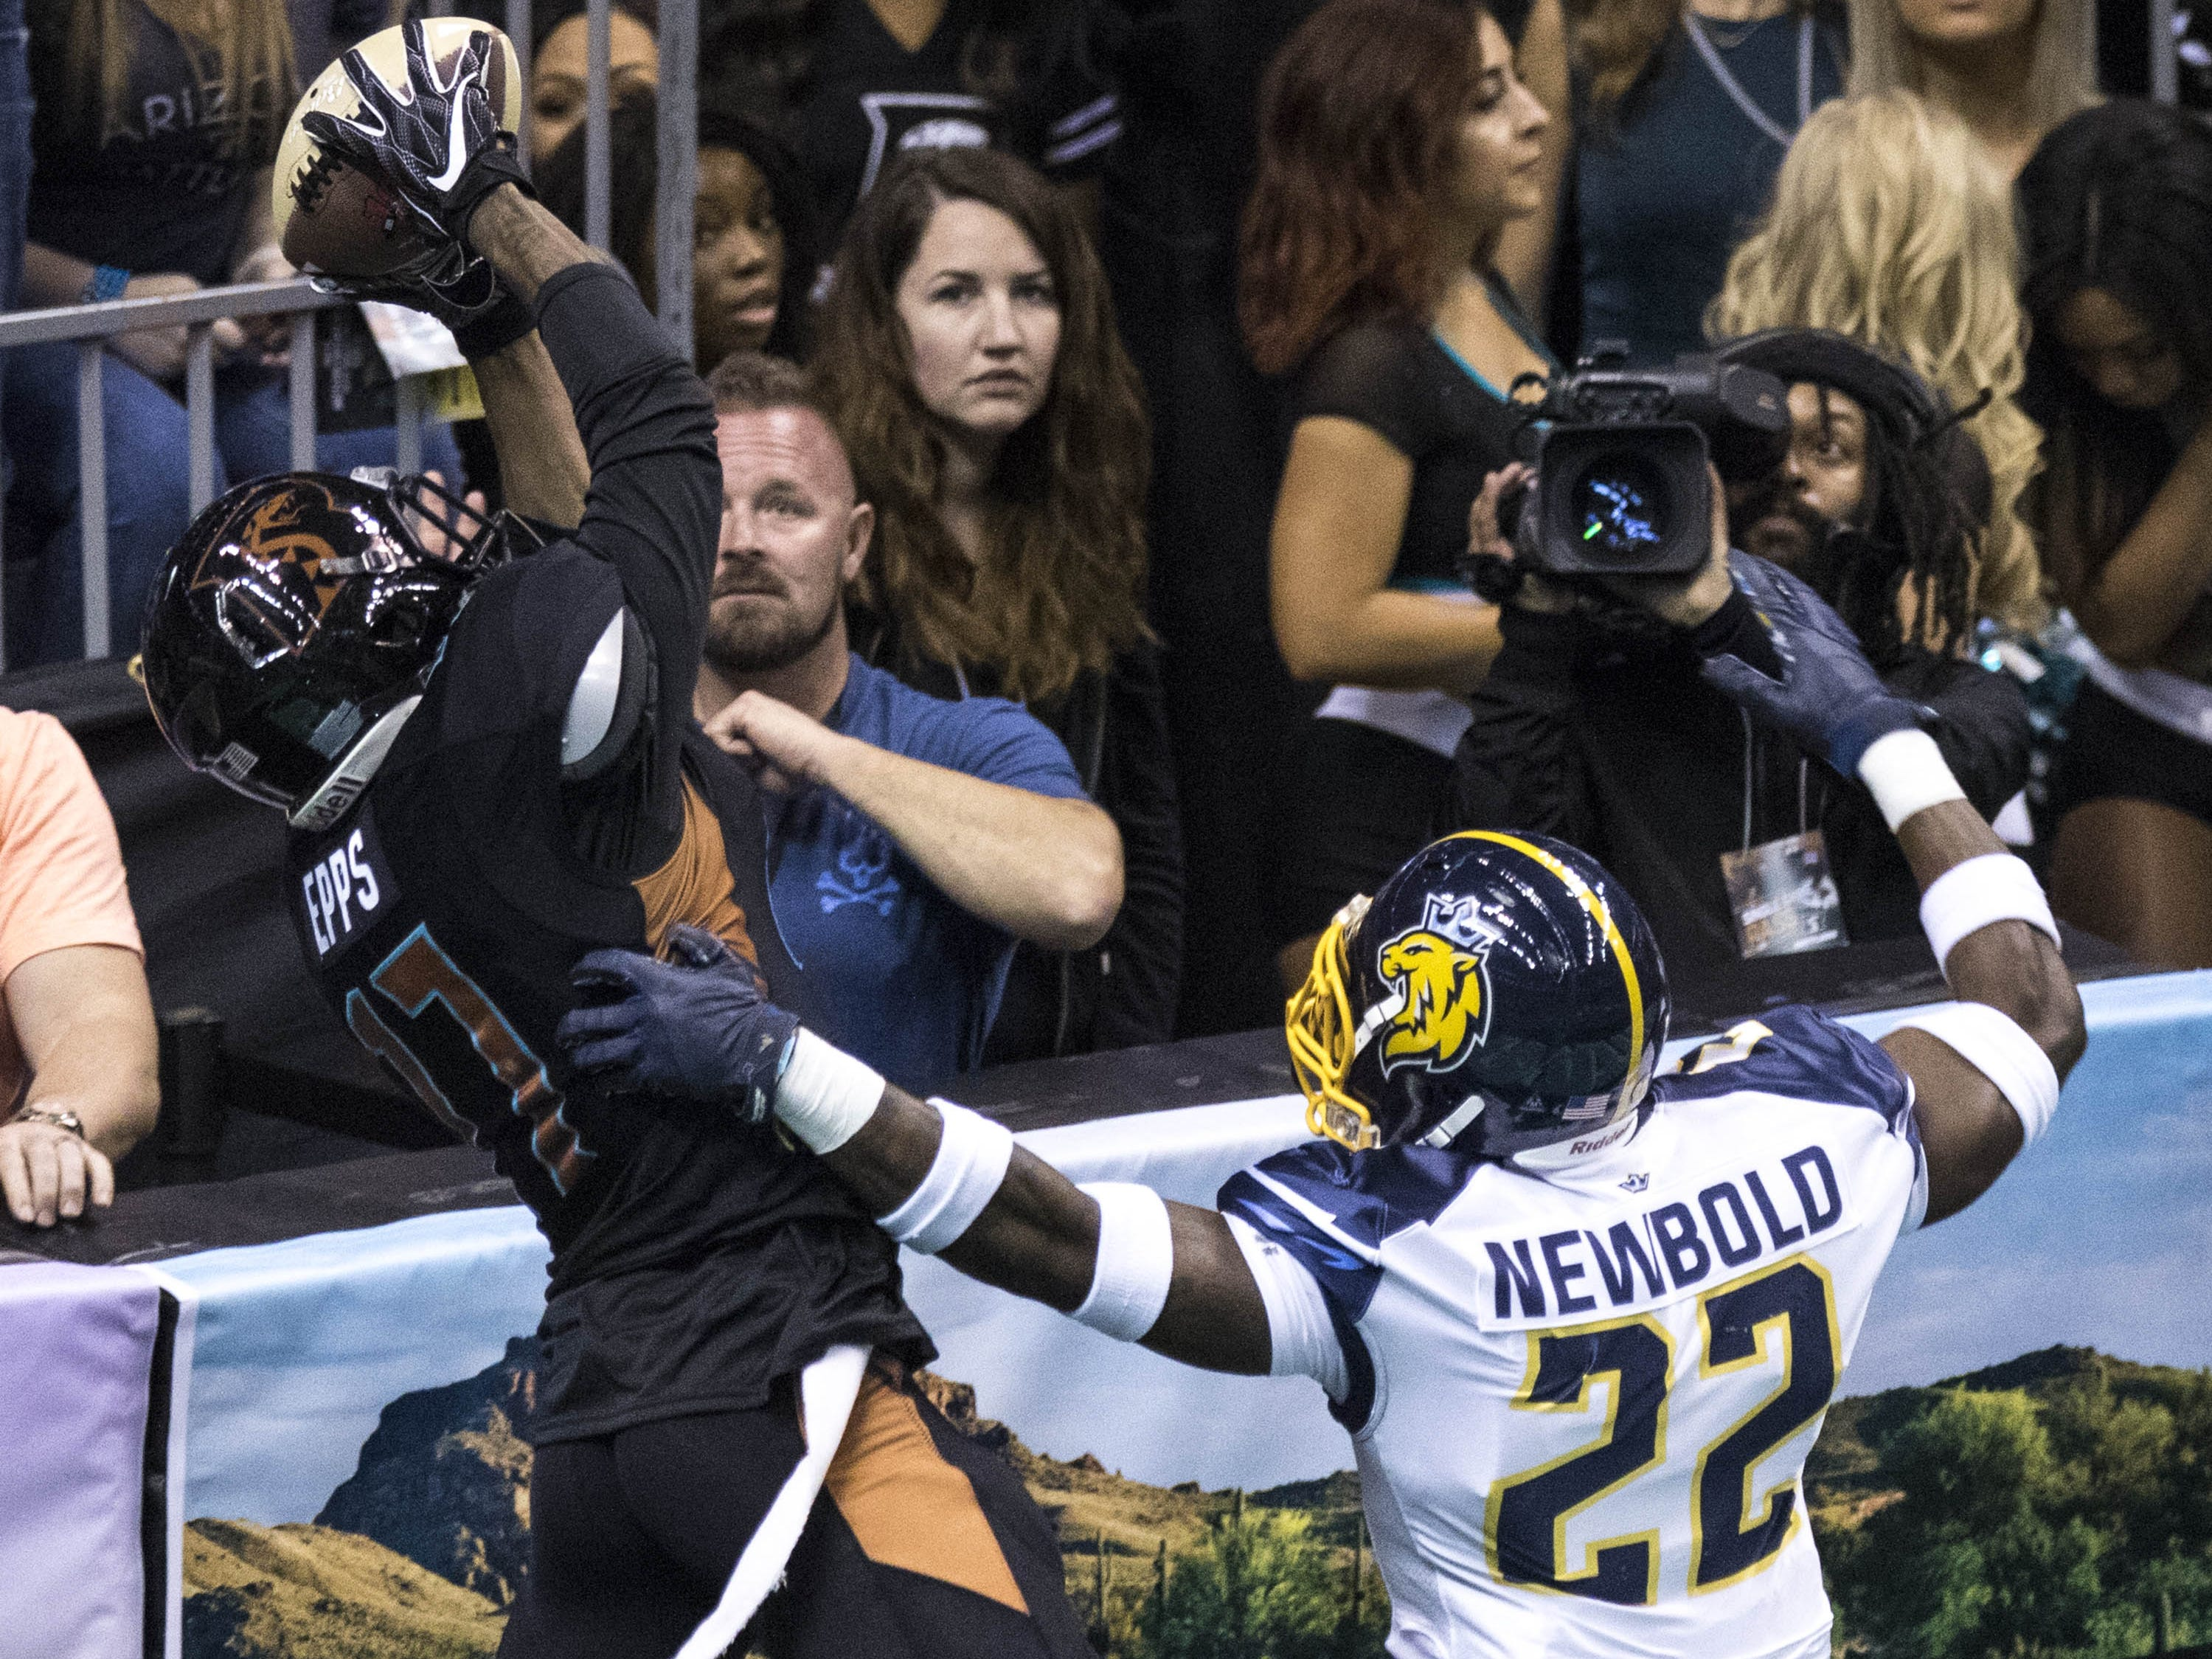 Arizona Rattlers' Dezmon Epps (17) catches a touchdown pass against Cedar Rapids River Kings' La'Darius Newbold (22) during the first half of their game at Talking Stick Resort Arena in Phoenix, Sunday, March 3, 2019.